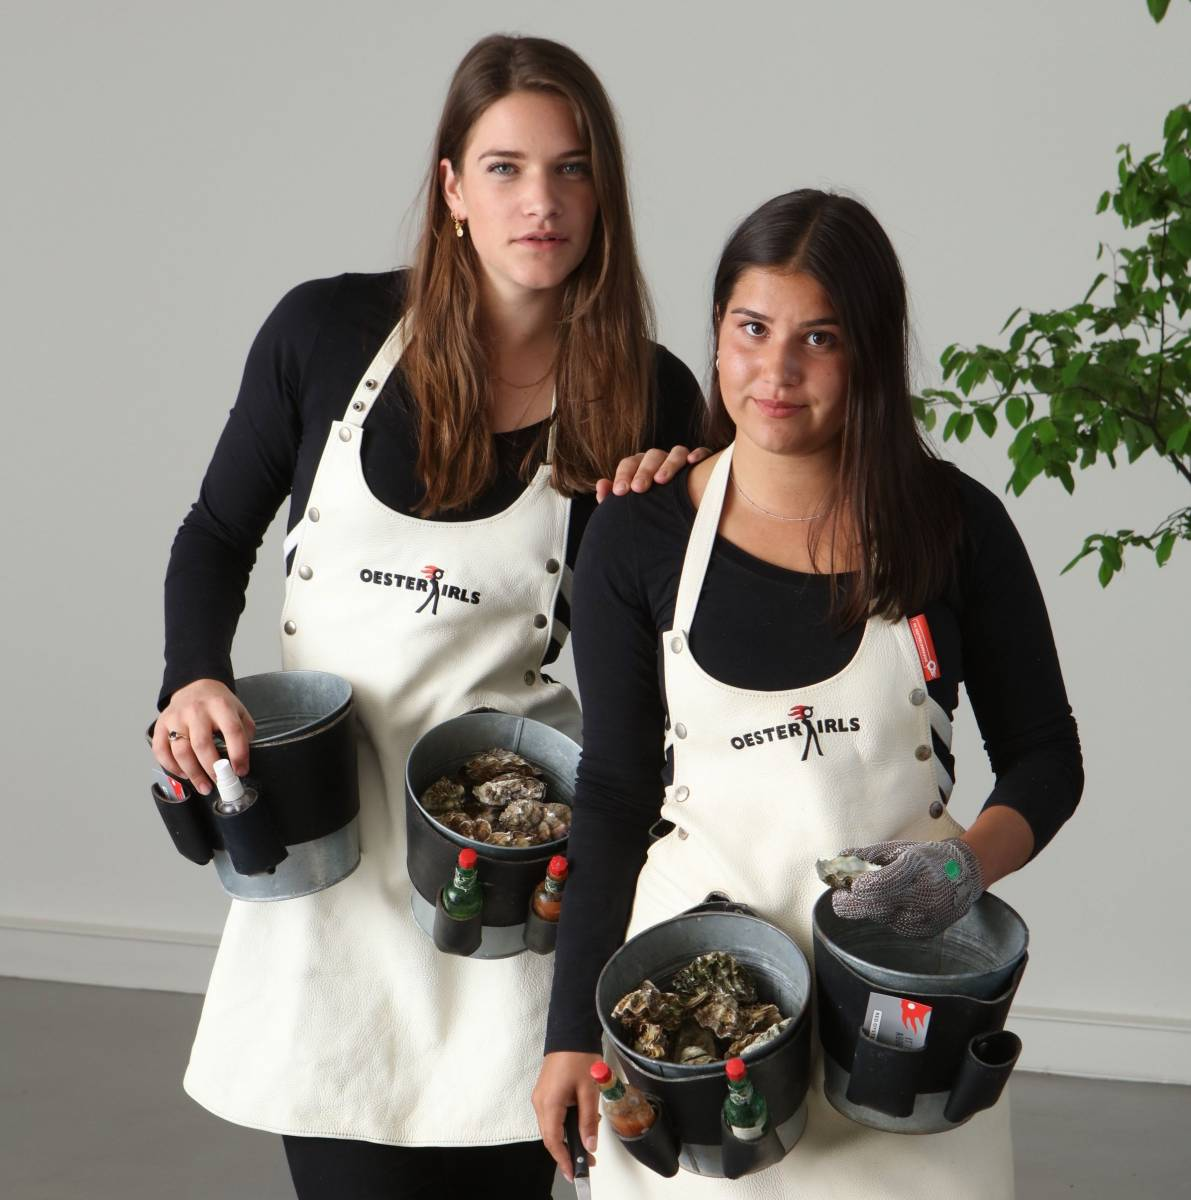 Oestercompagnie - Oesters op je trouw, huwelijk, bruiloft - Catering - Showcooking - House of Events - 8